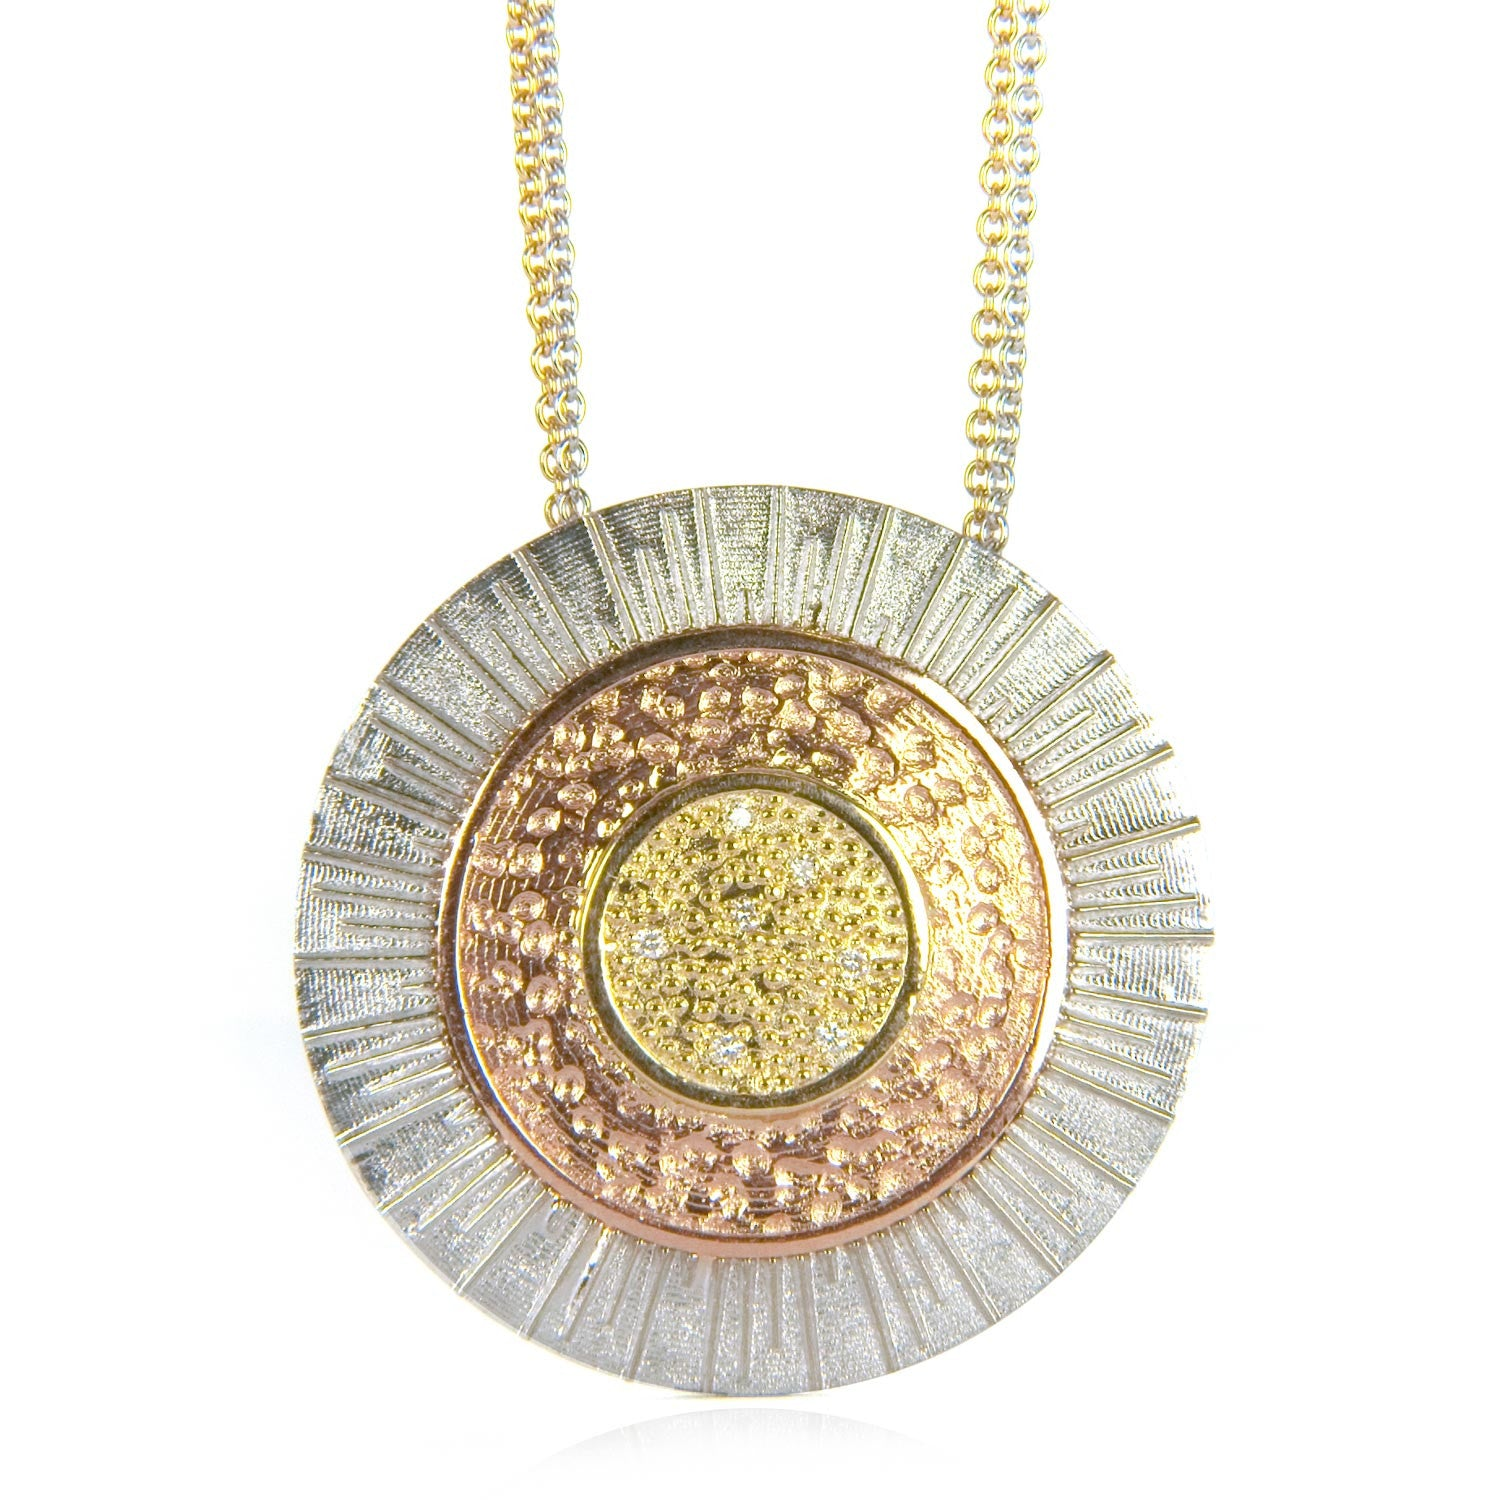 Adam bespoke pendant - white, rose and yellow recycled gold and conflict-free diamonds